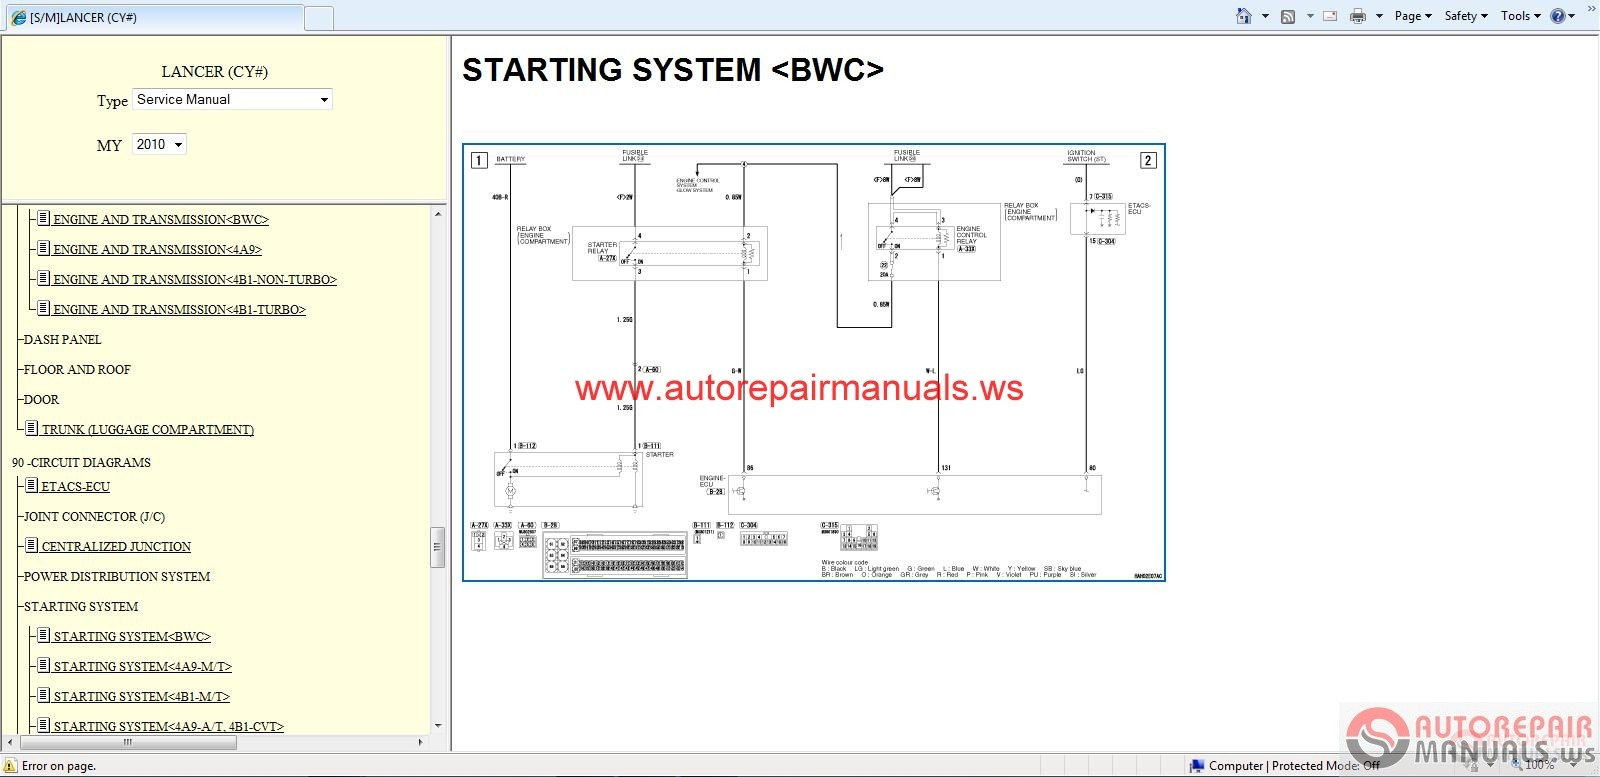 mitsubishi lancer 2010 service manual auto repair manual Mitsubishi Wiring Schematics